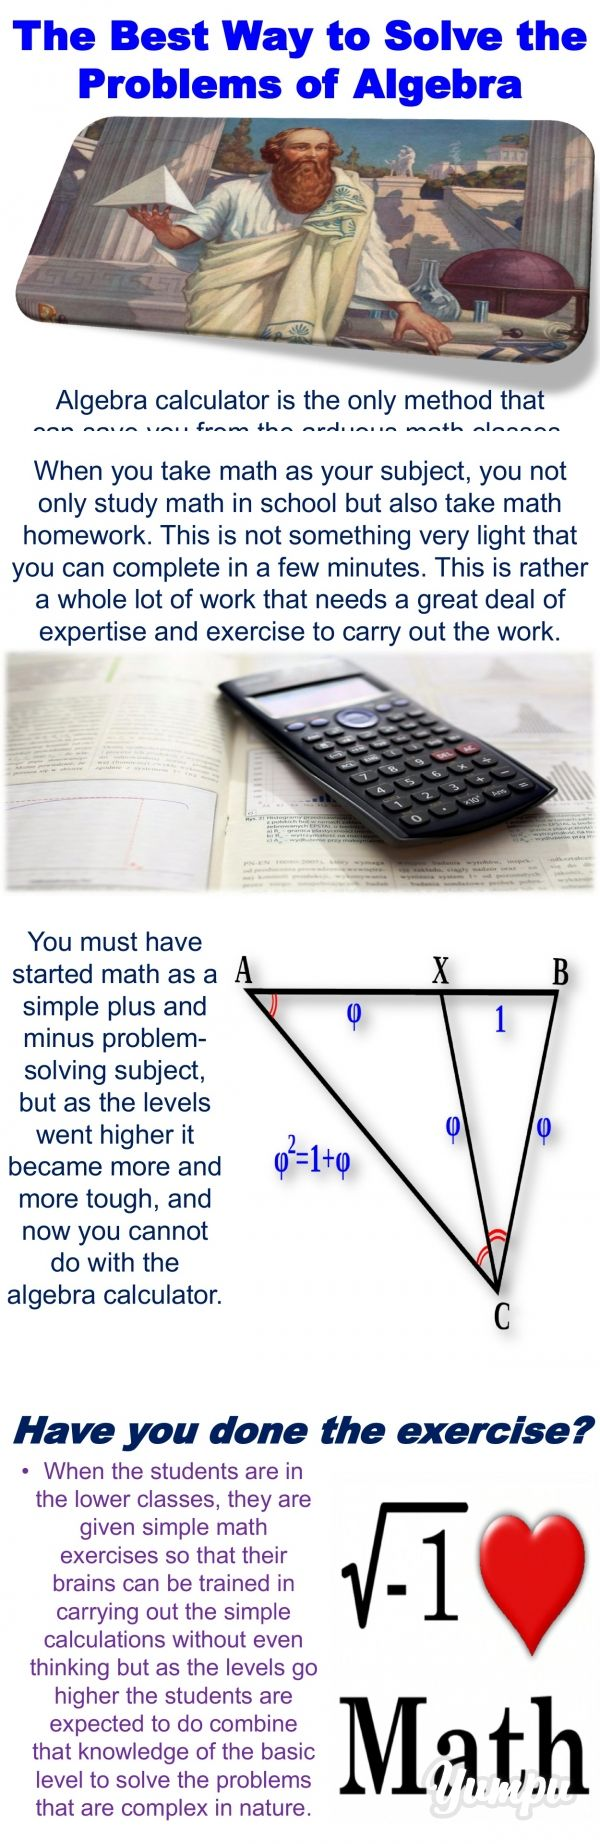 college algebra help solving problems best ideas about solve  best ideas about algebra calculator algebra help the best way to solve the problems of algebra